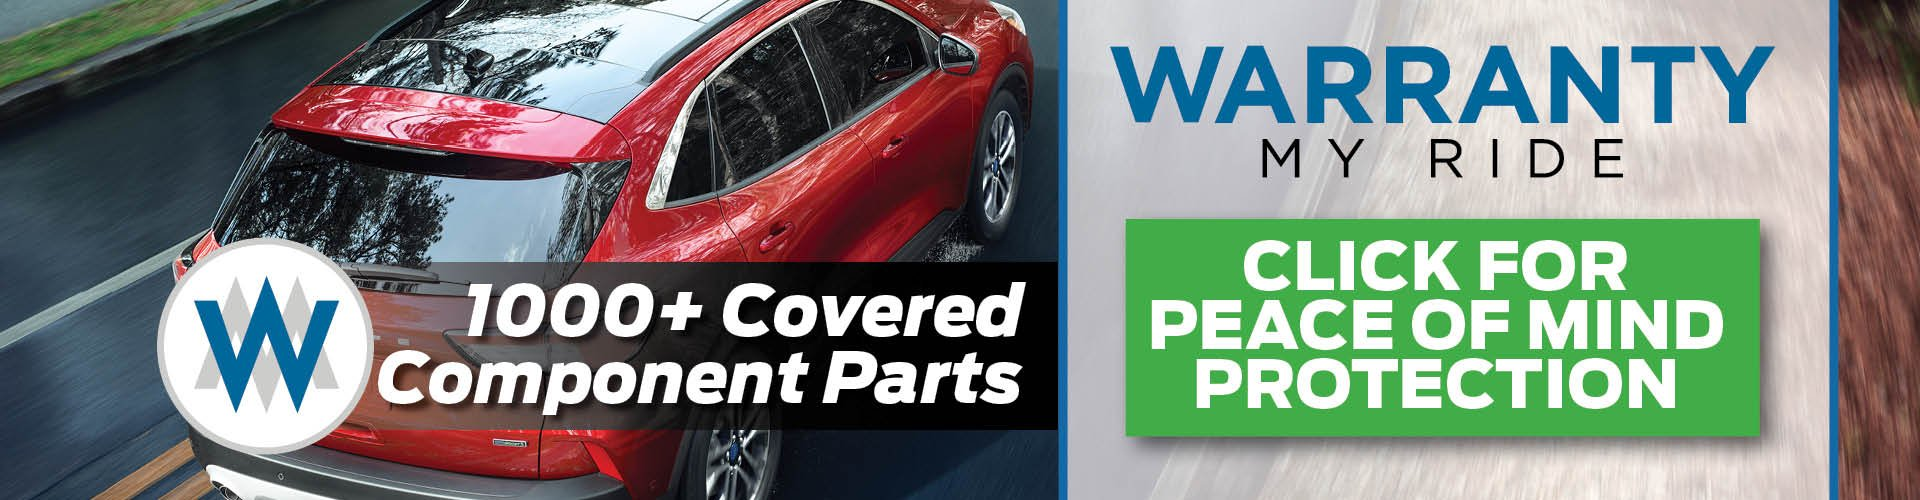 Warranty your vehicle with PremiumCARE